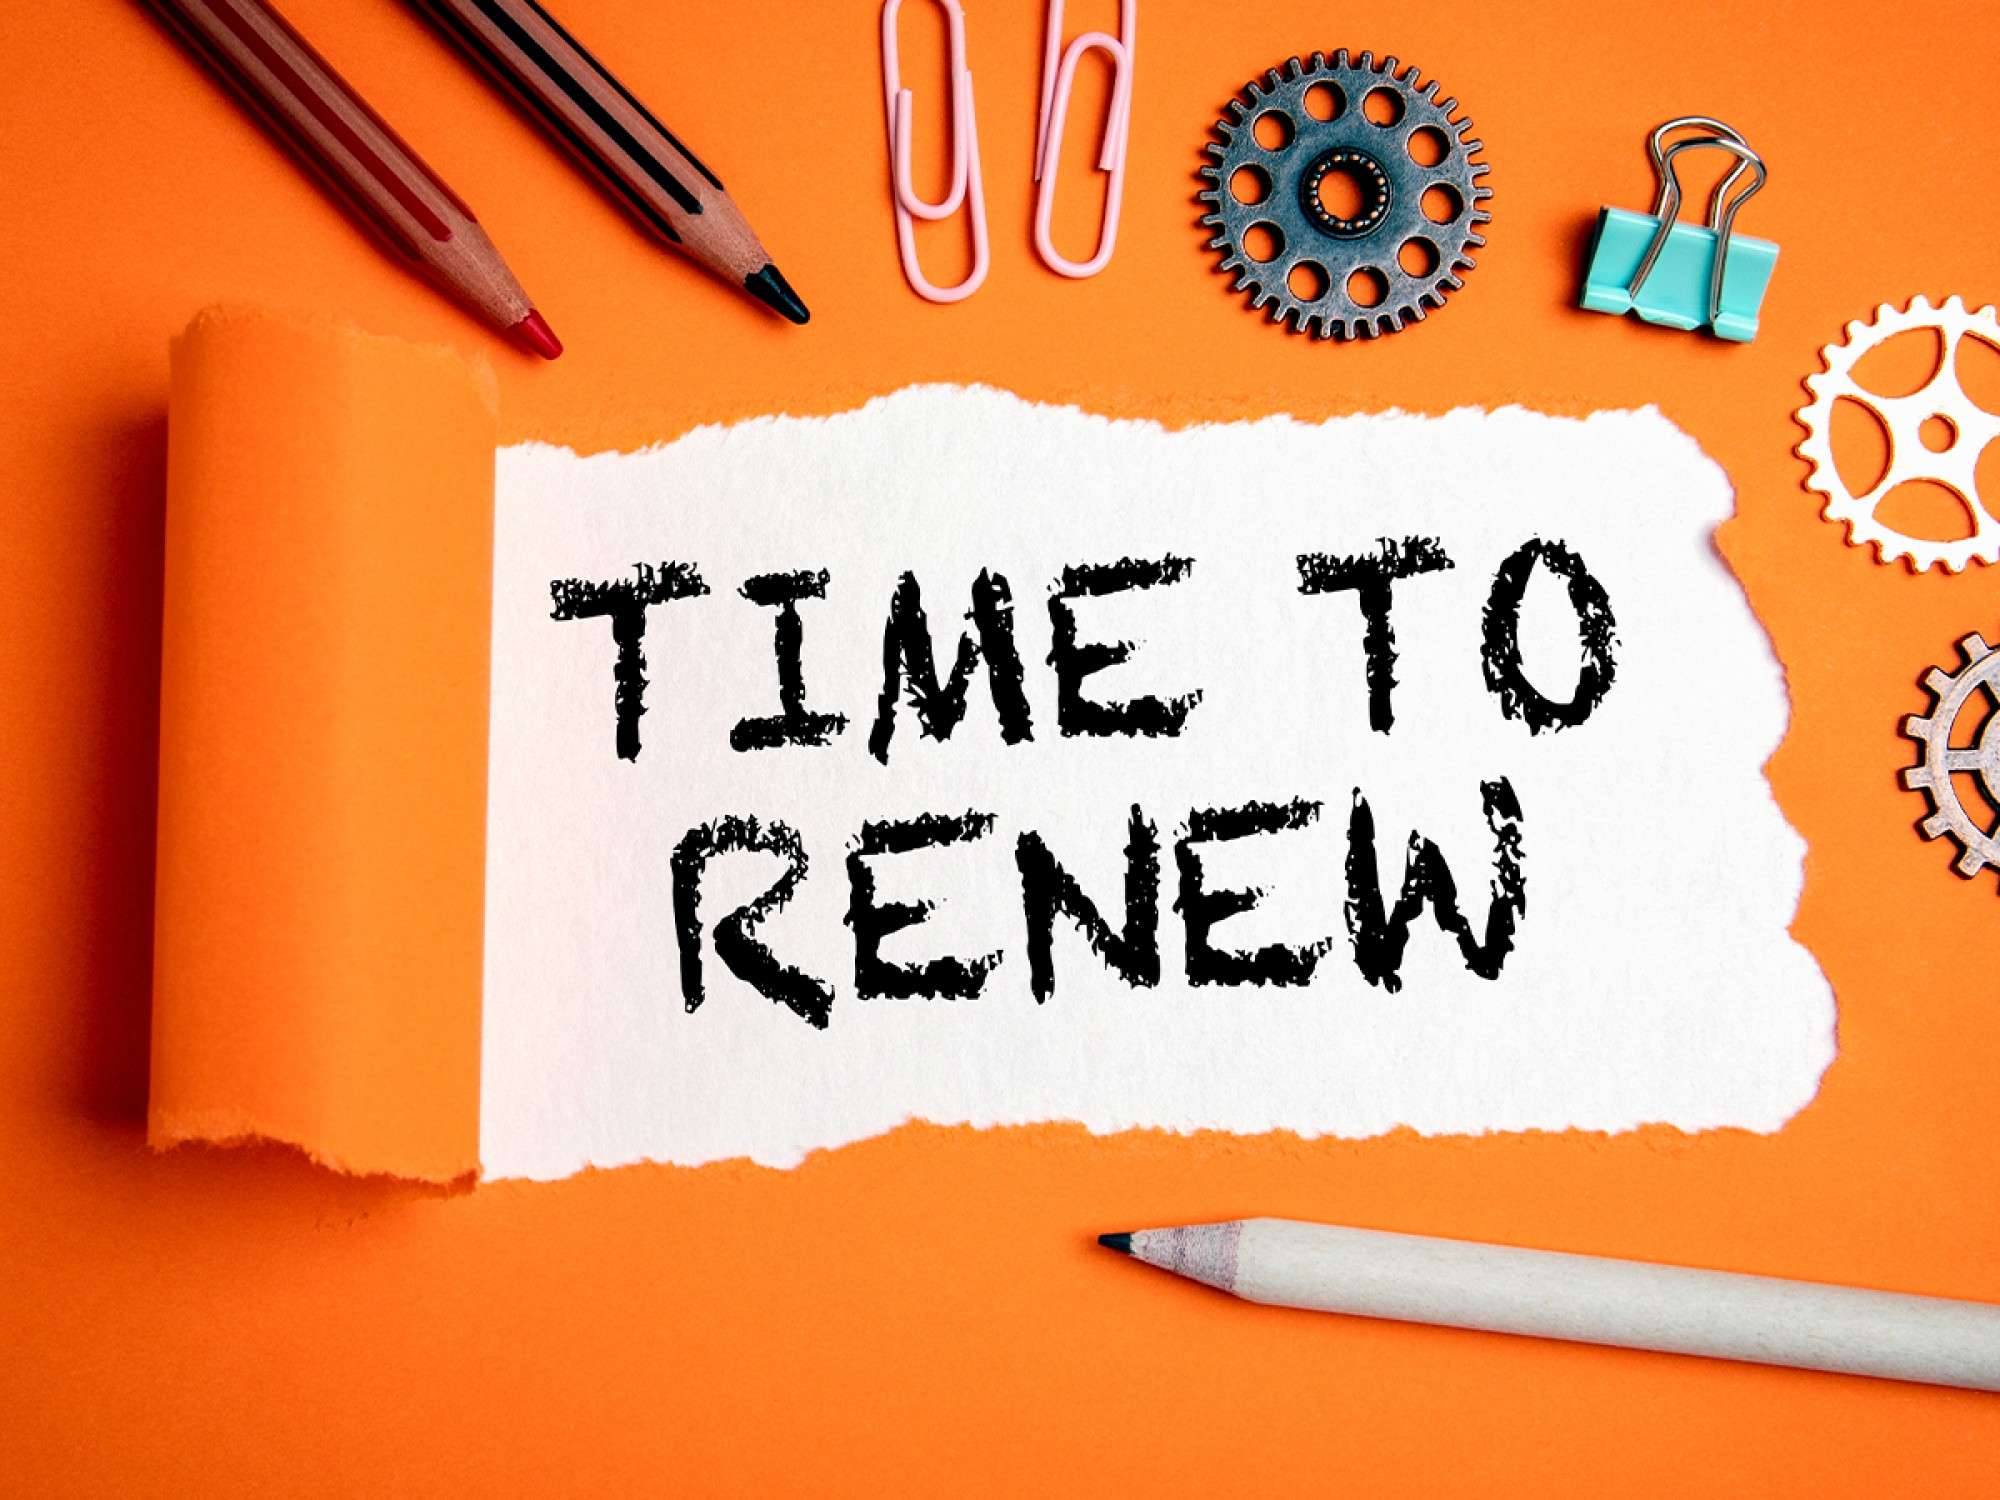 Has licensing renewal caught you by surprise?